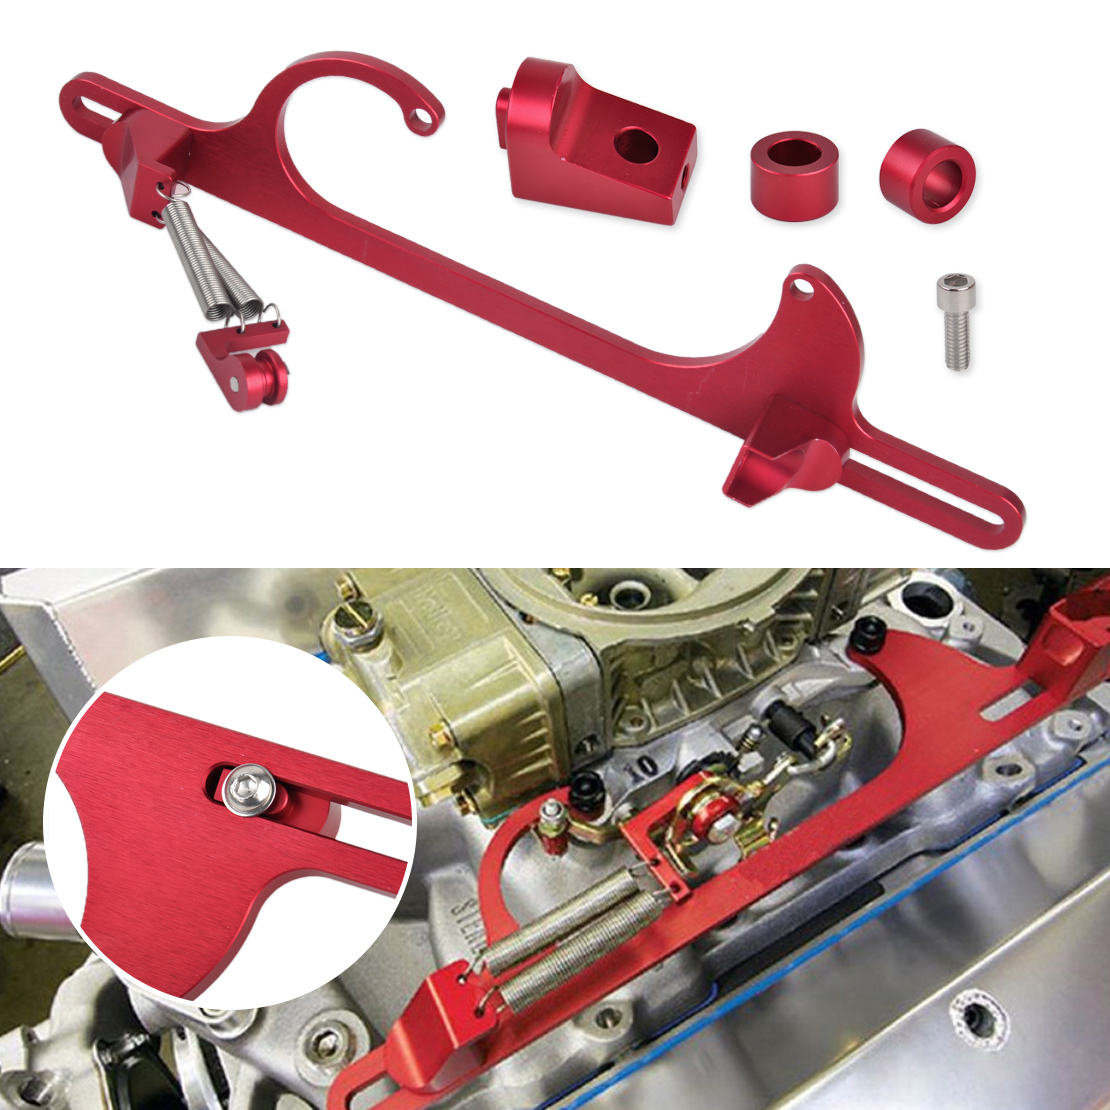 4160 Series Red Throttle Cable Carb Bracket Replacement For Holley Carb 4150